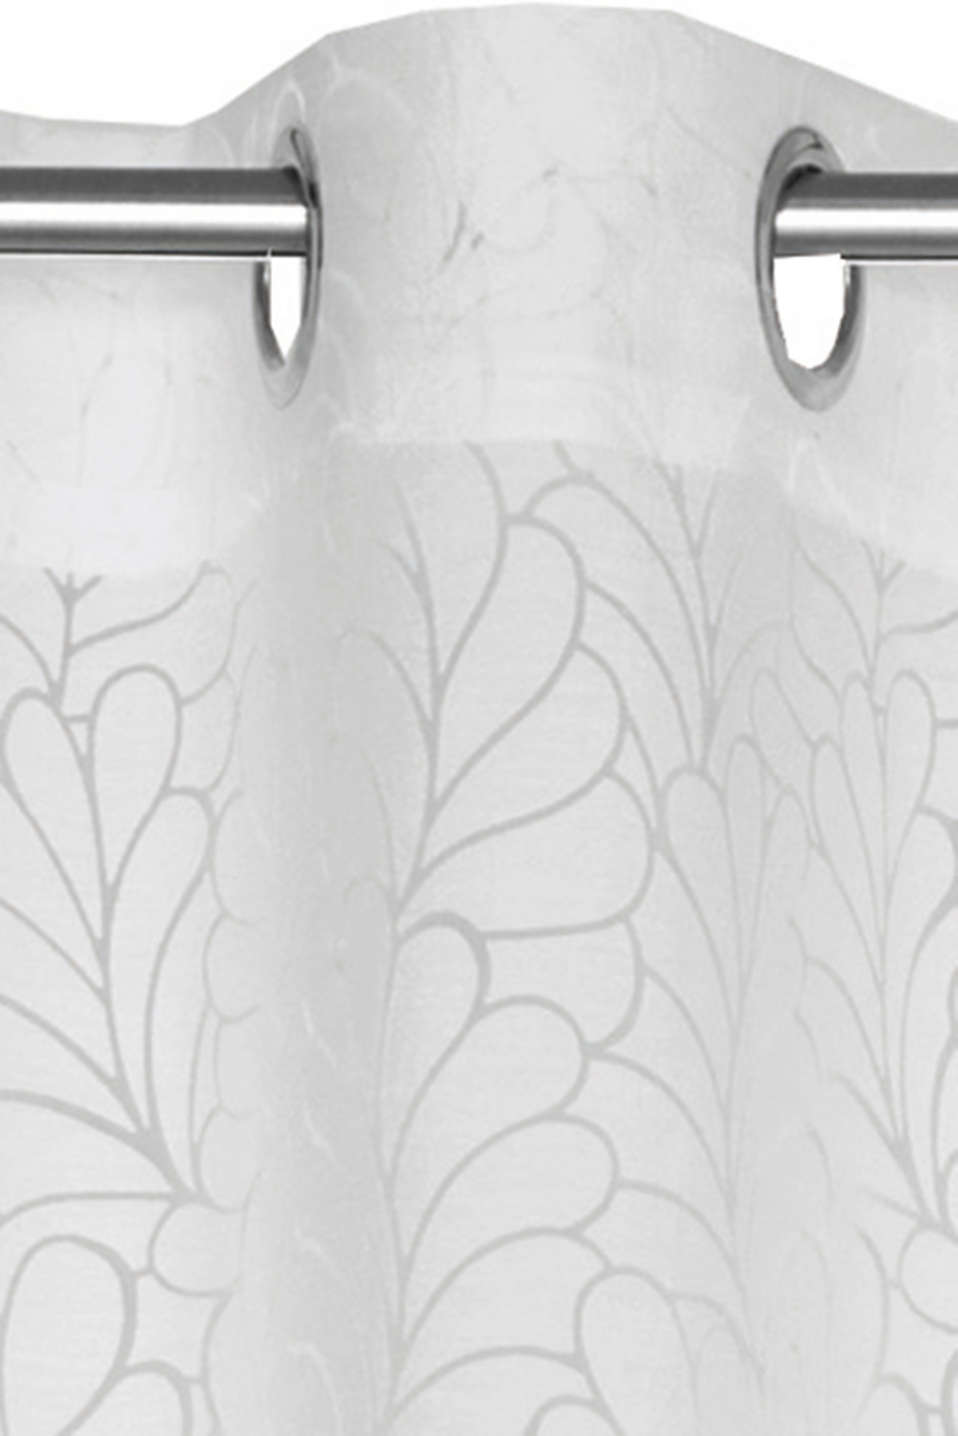 Eyelet curtain with floral burnt-out pattern